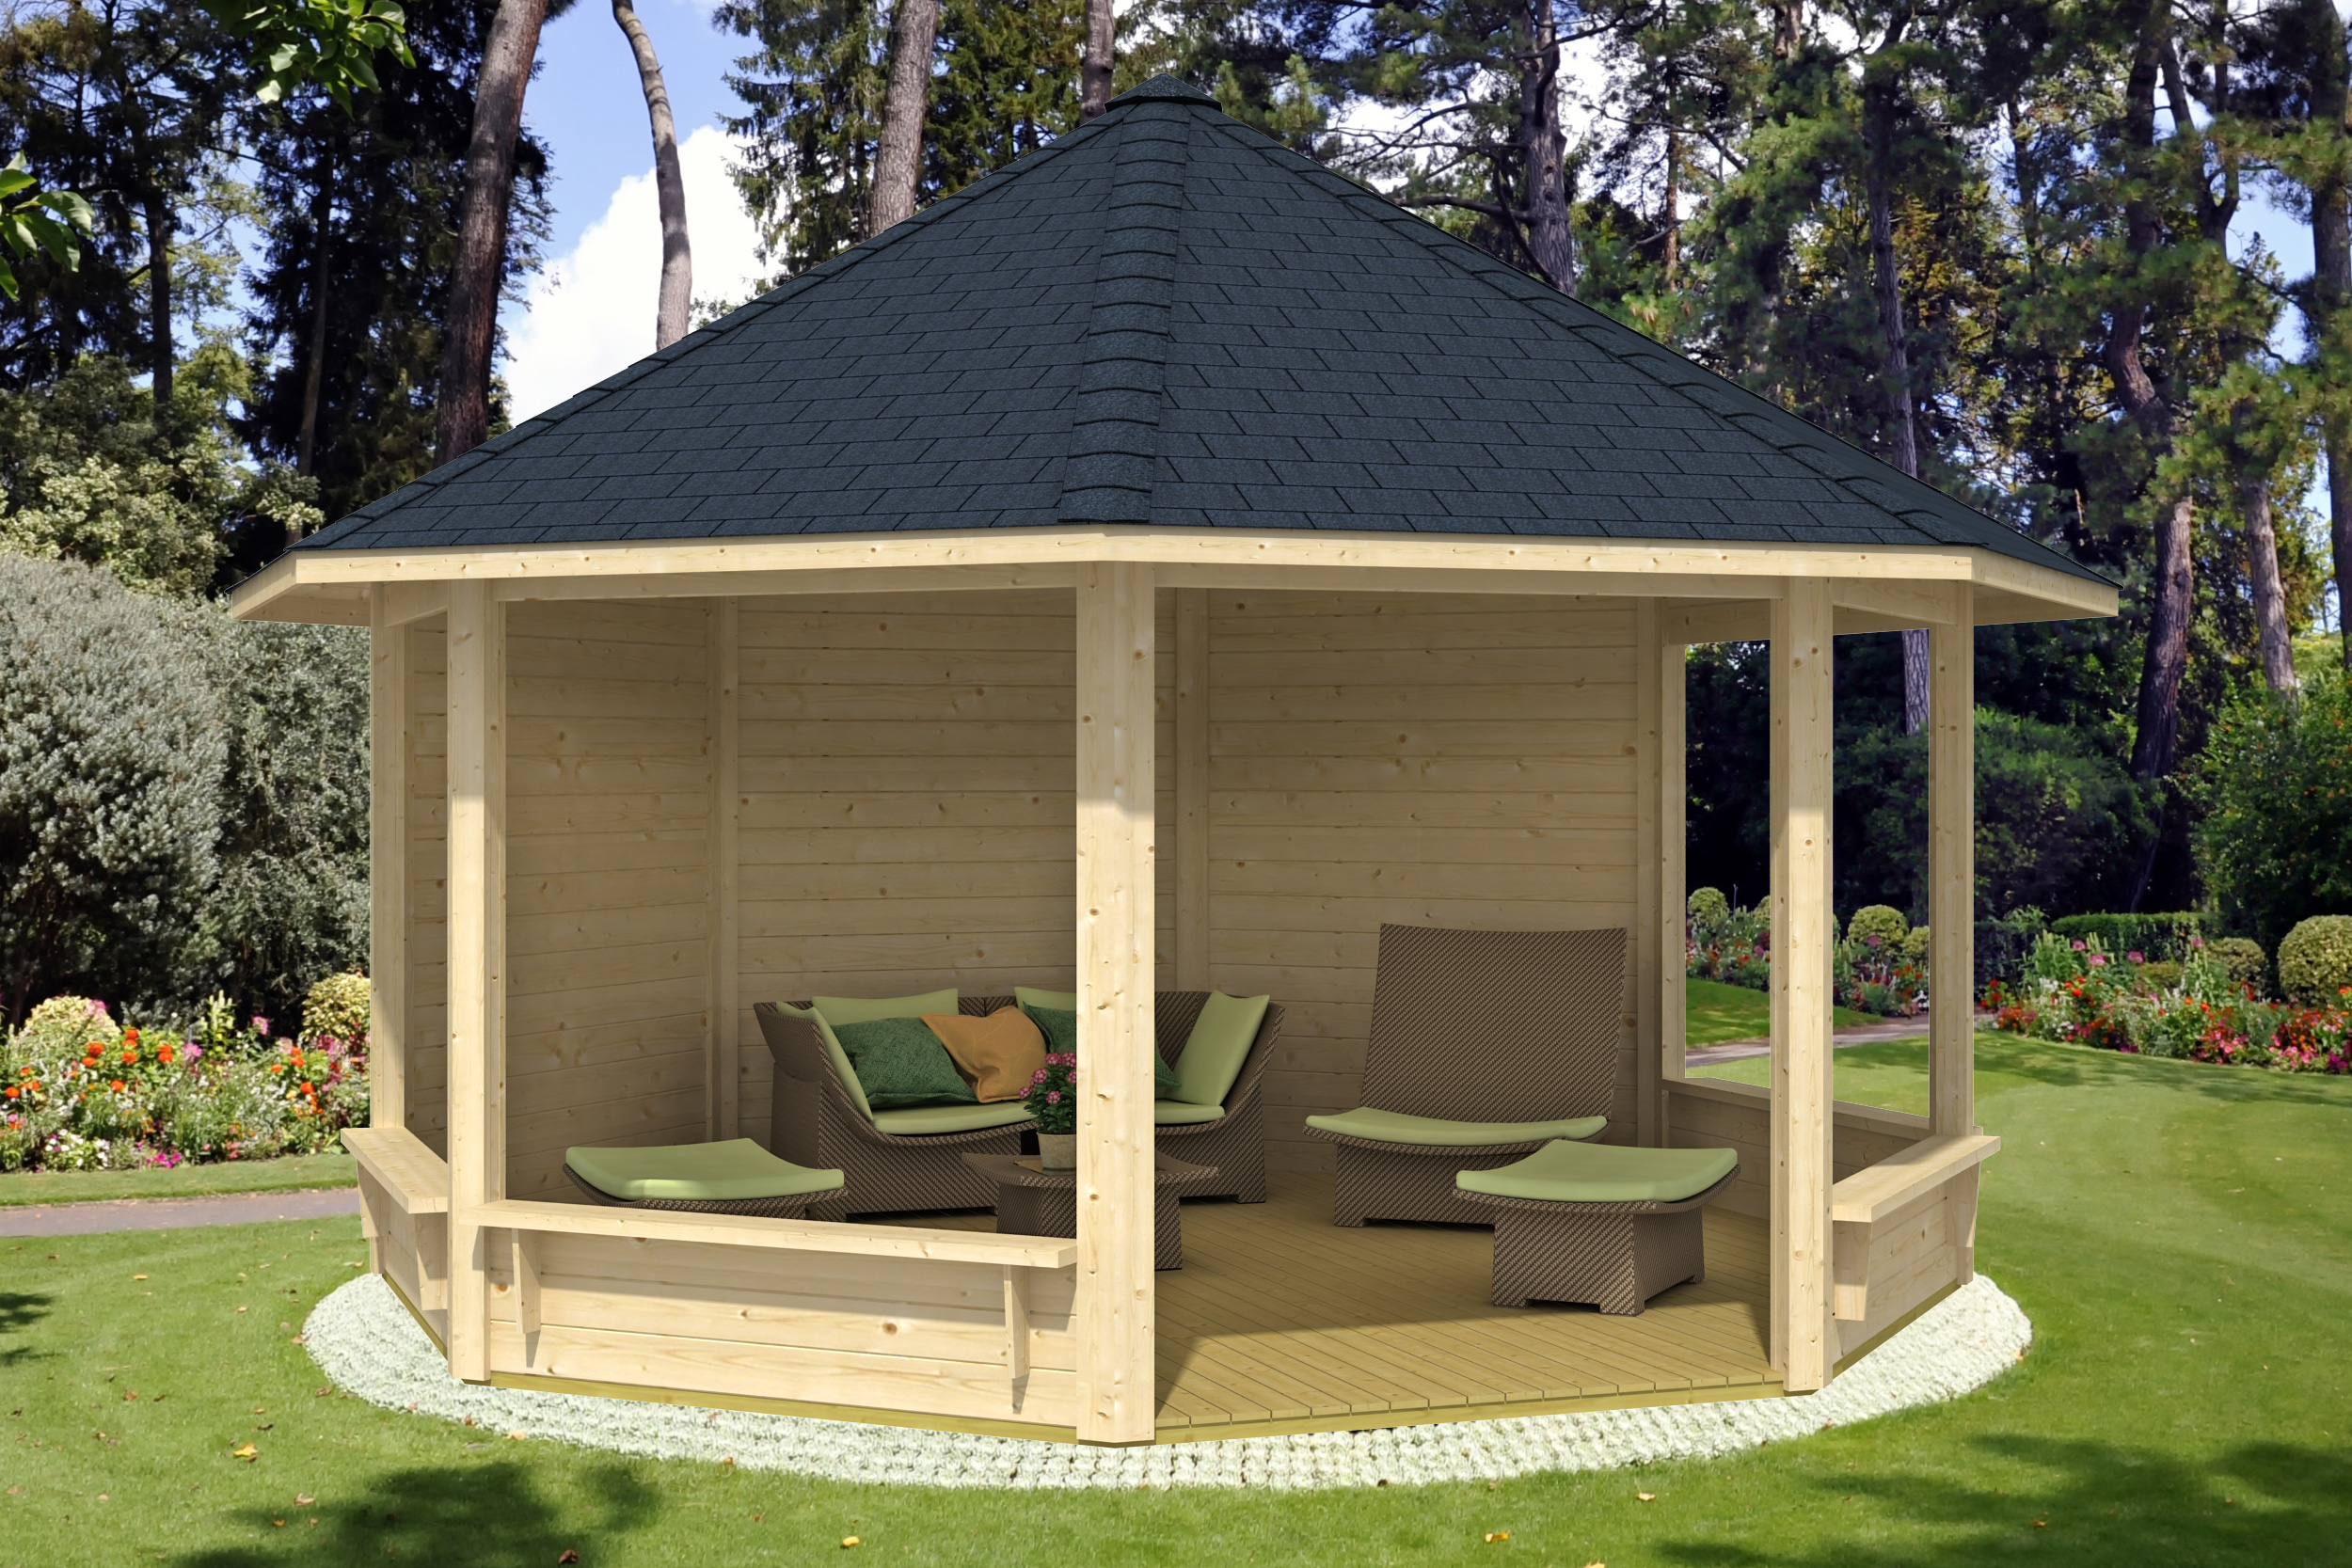 gartenpavillon modell pellworm. Black Bedroom Furniture Sets. Home Design Ideas